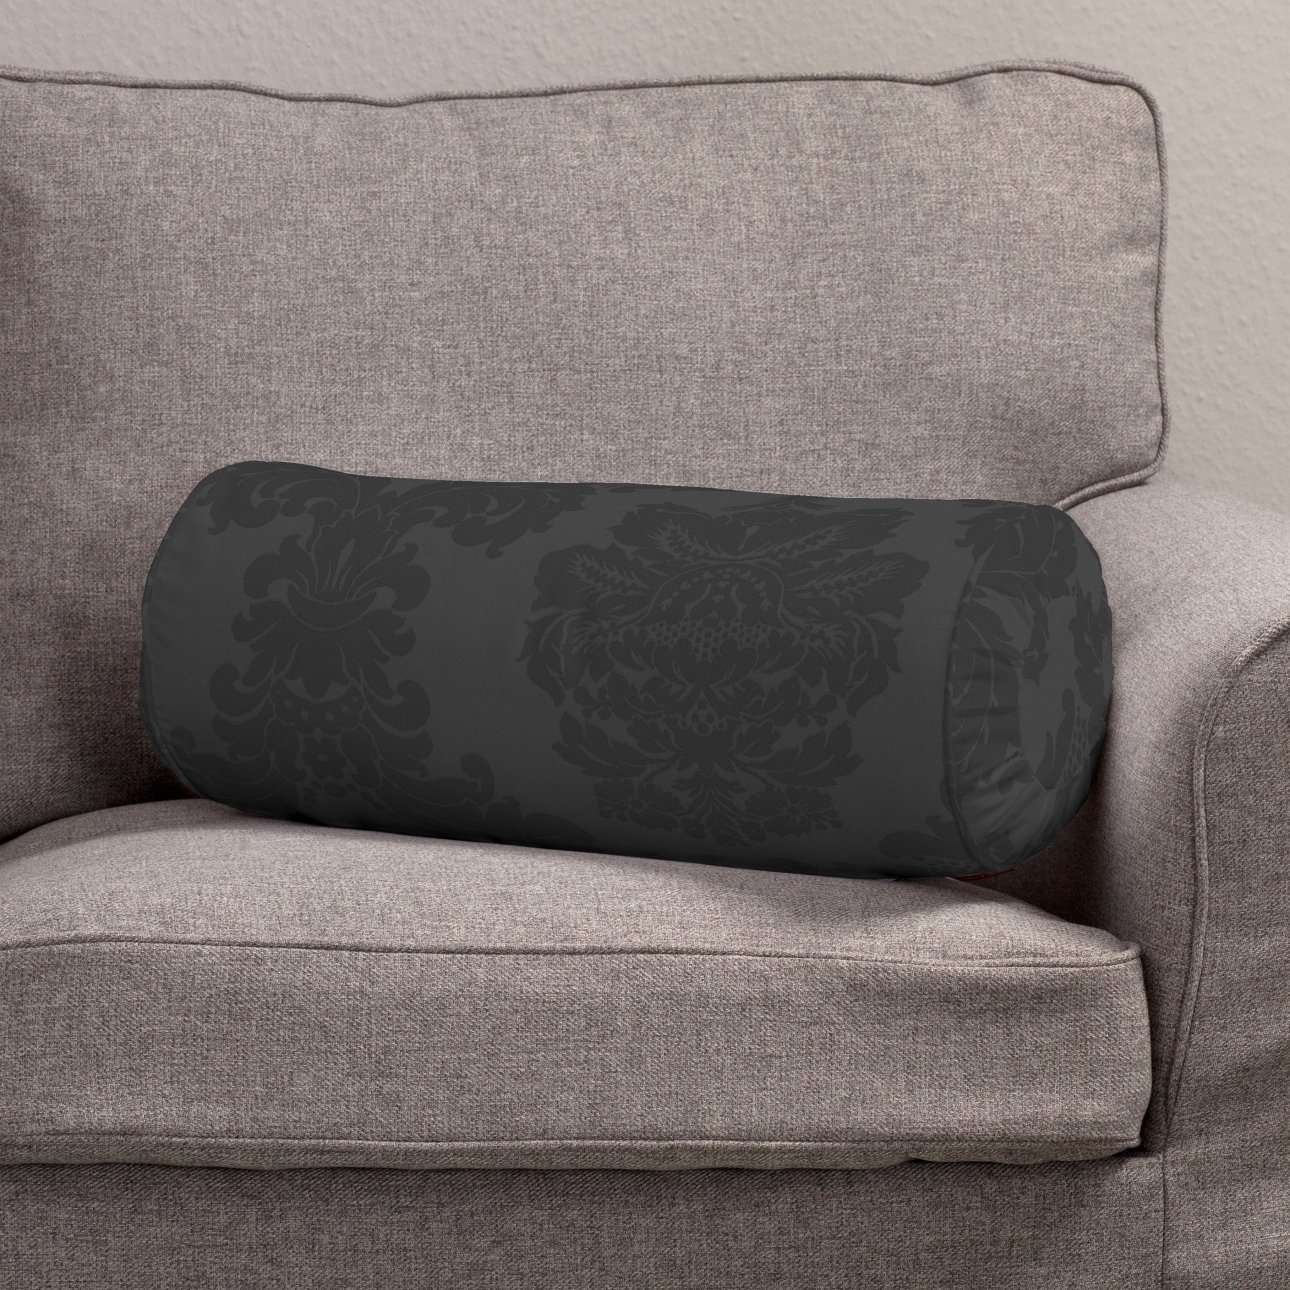 Bolster cushion with pleats in collection Damasco, fabric: 613-32